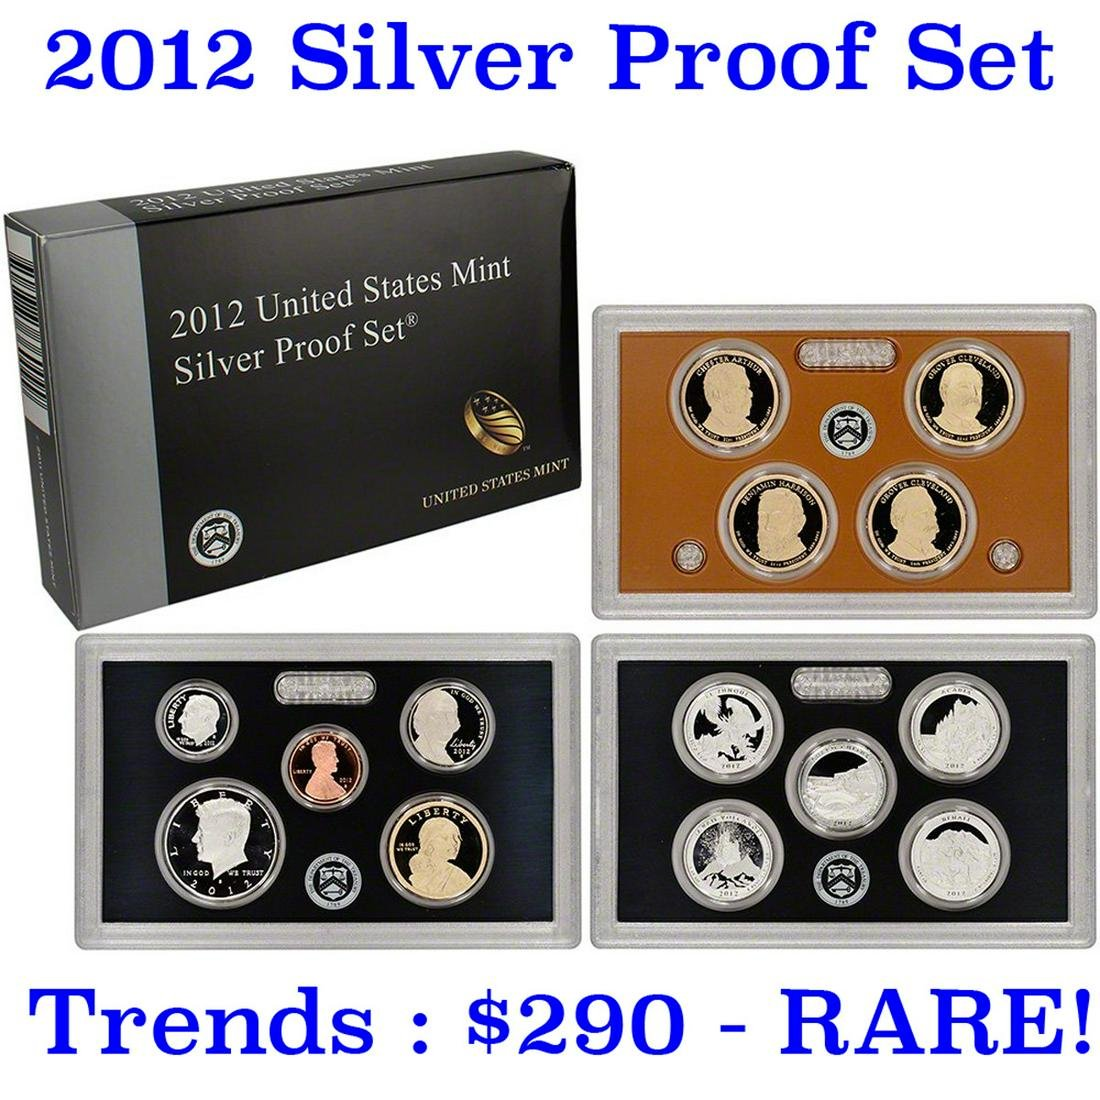 Hard to get, low mintage 2012 US Mint Silver Proof Set;